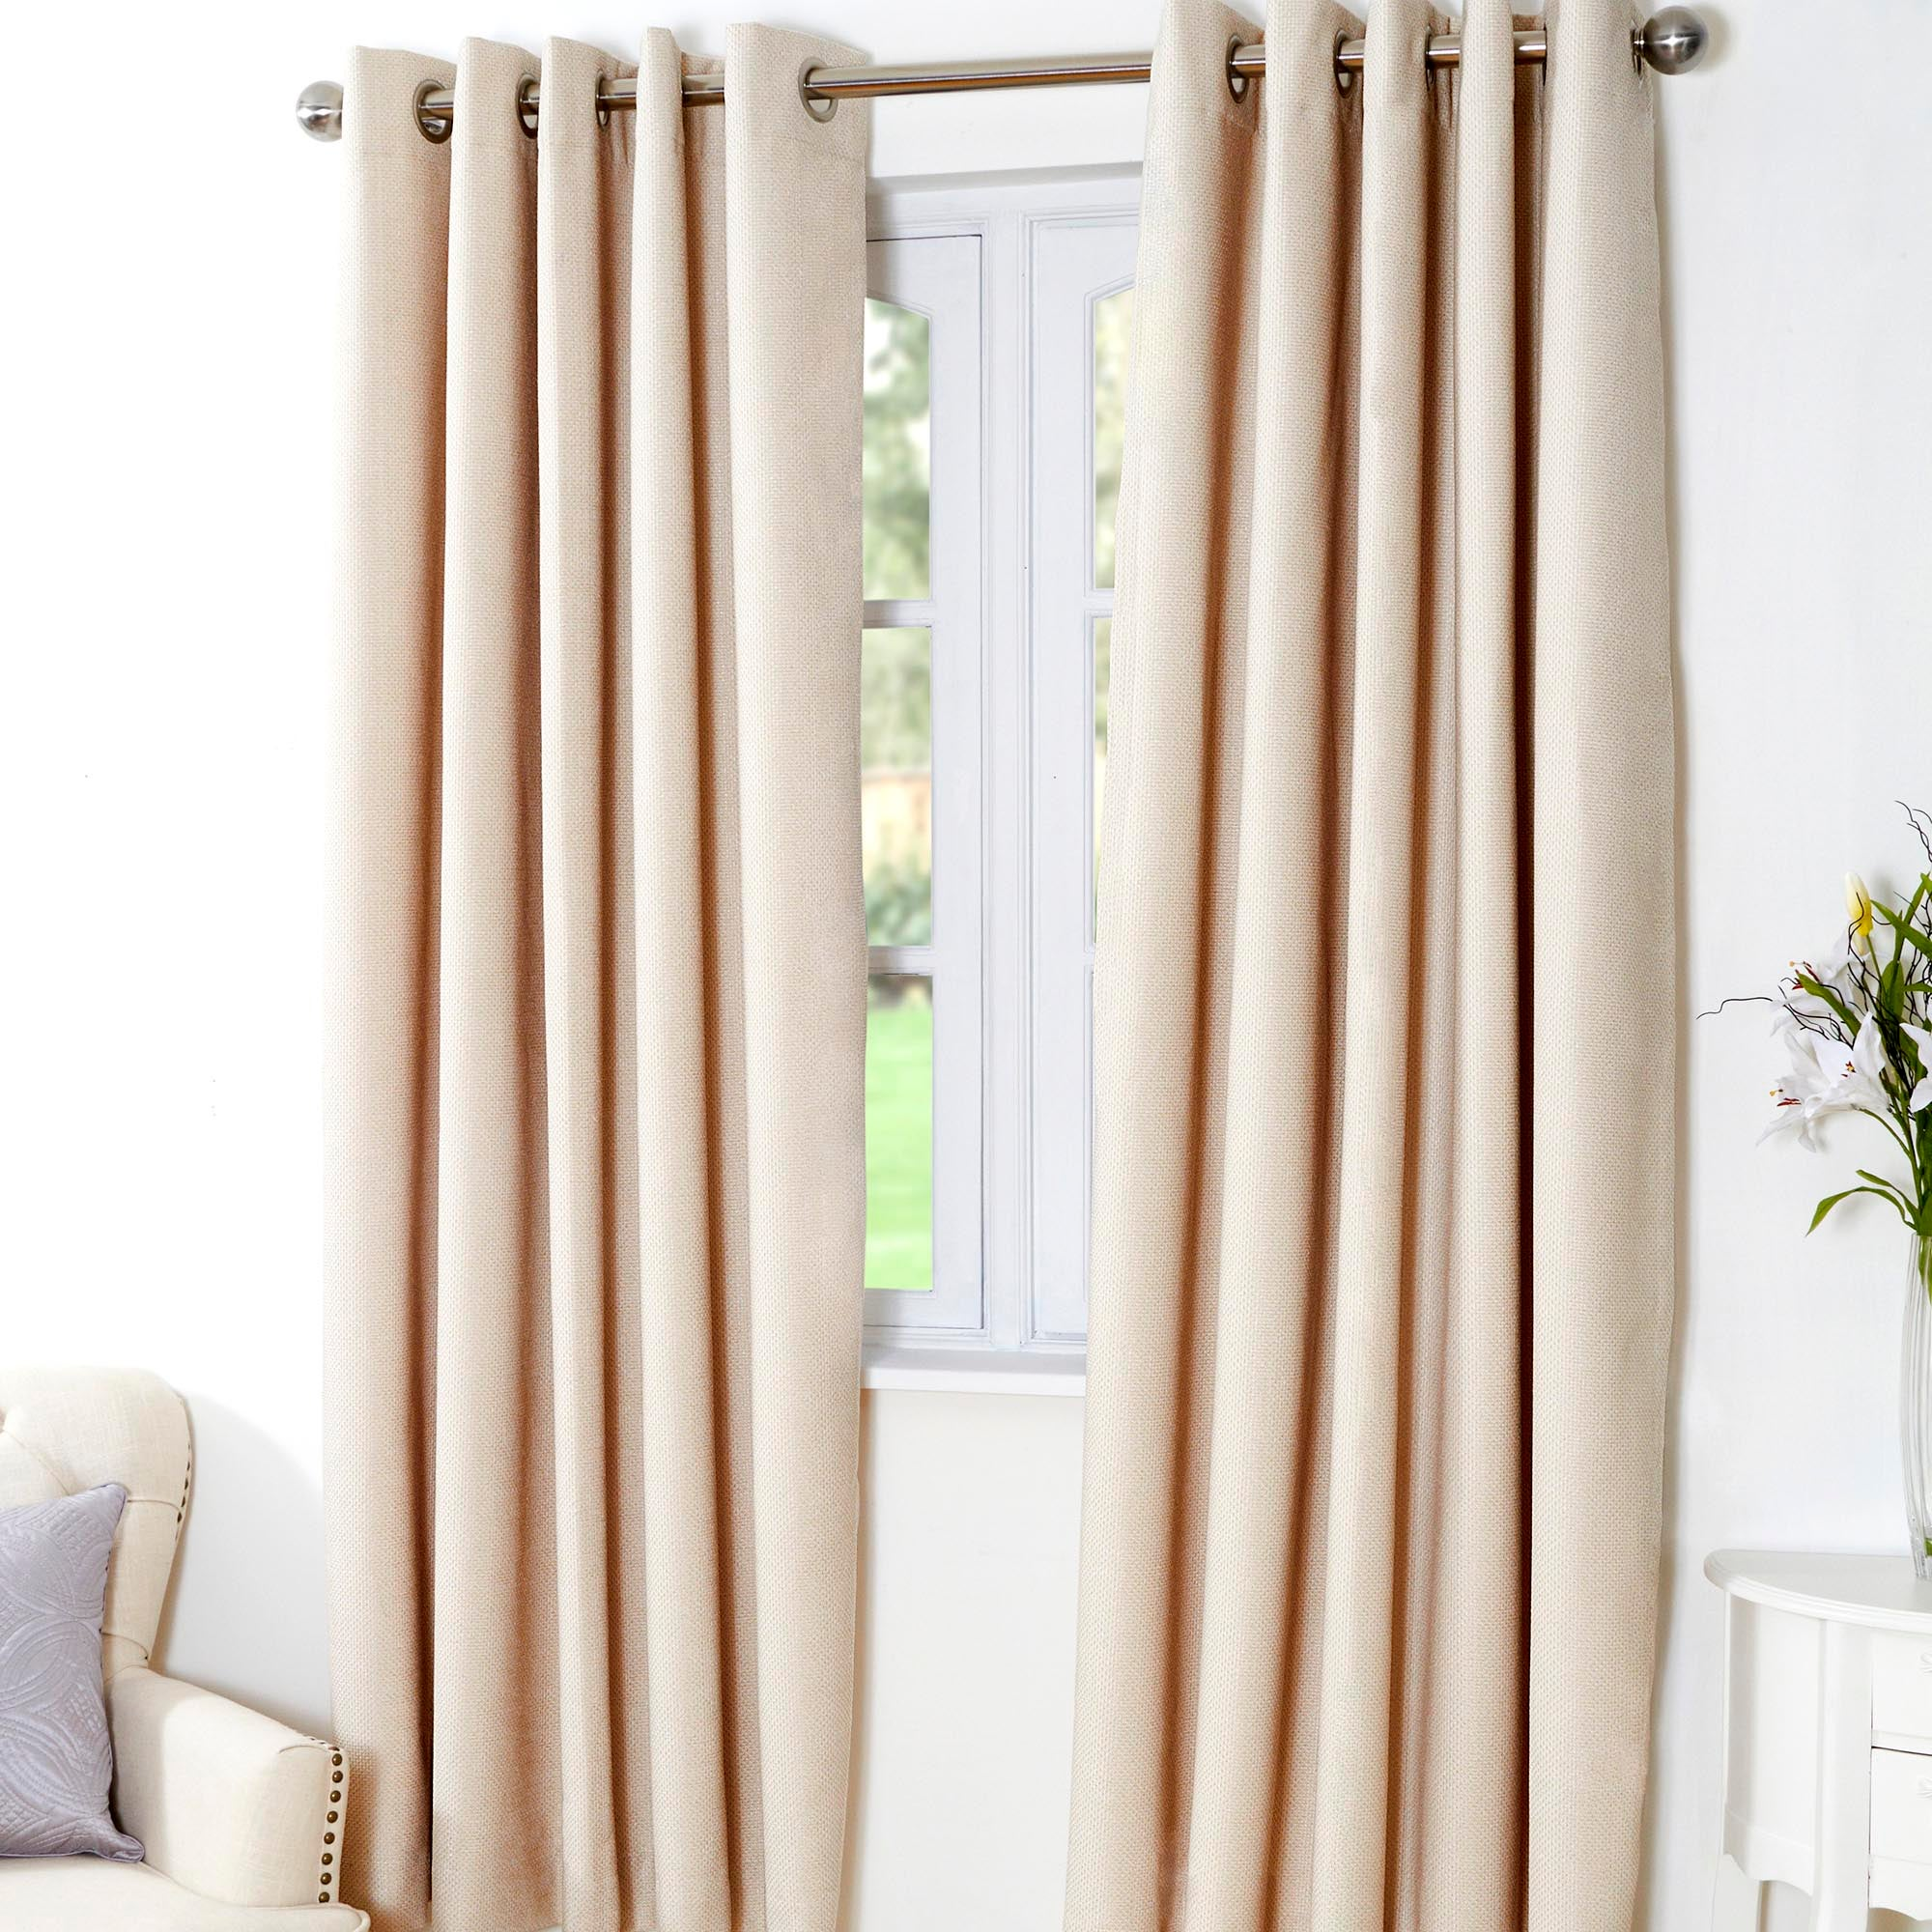 Natural Aspen Thermal Eyelet Curtains